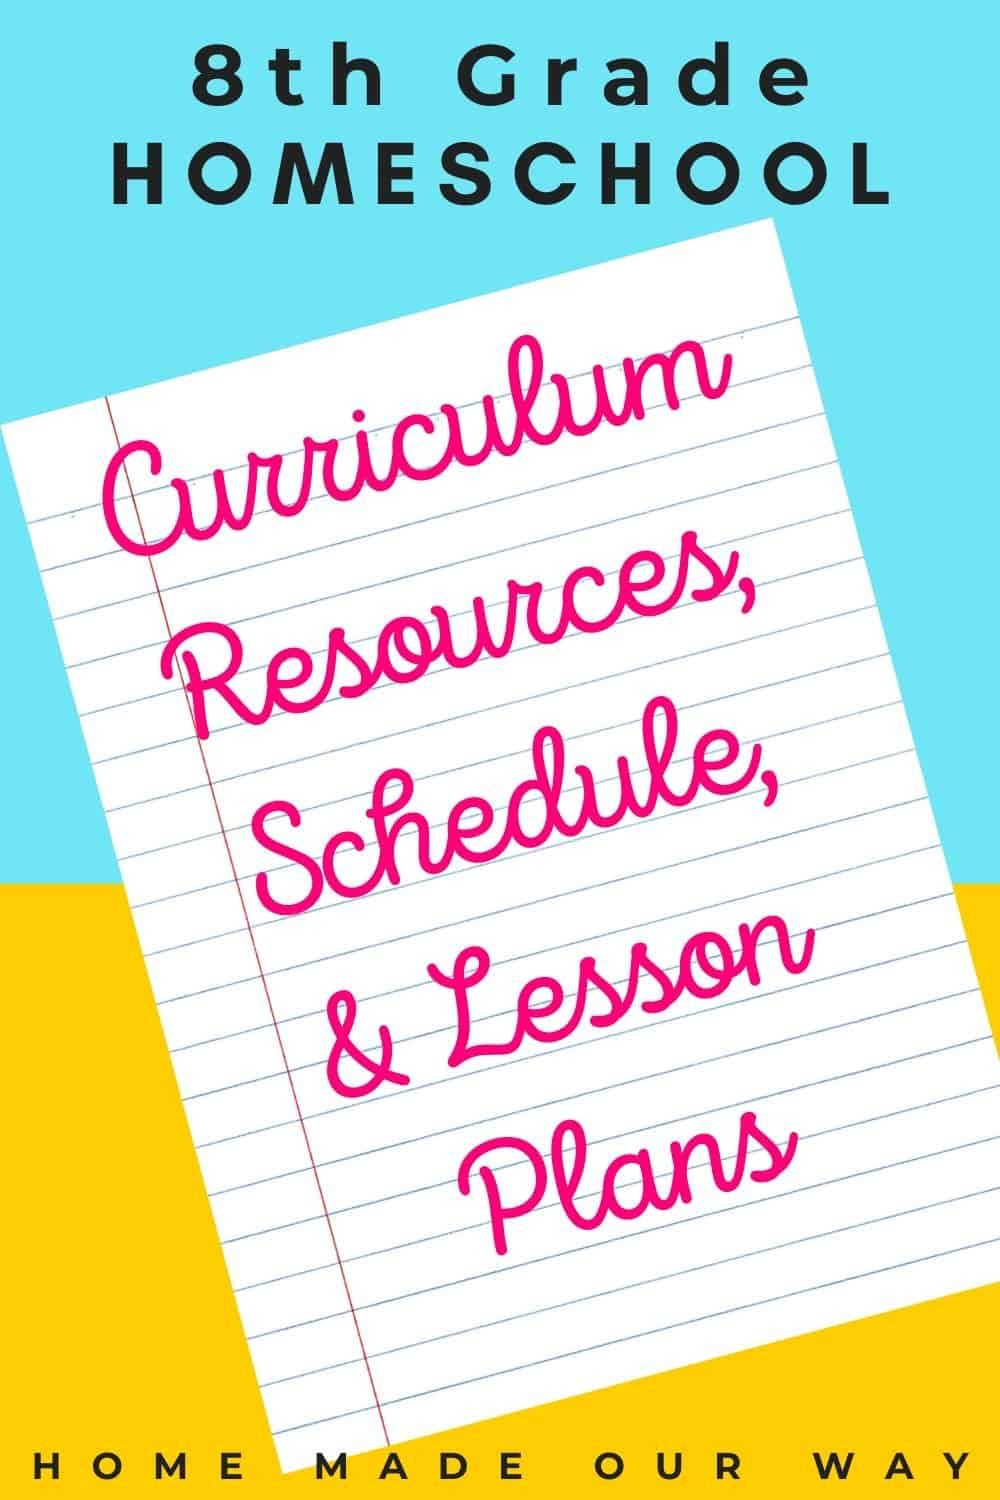 Photo of 8th Grade Homeschool Curriculum Resources, Schedule, and Lesson Plans